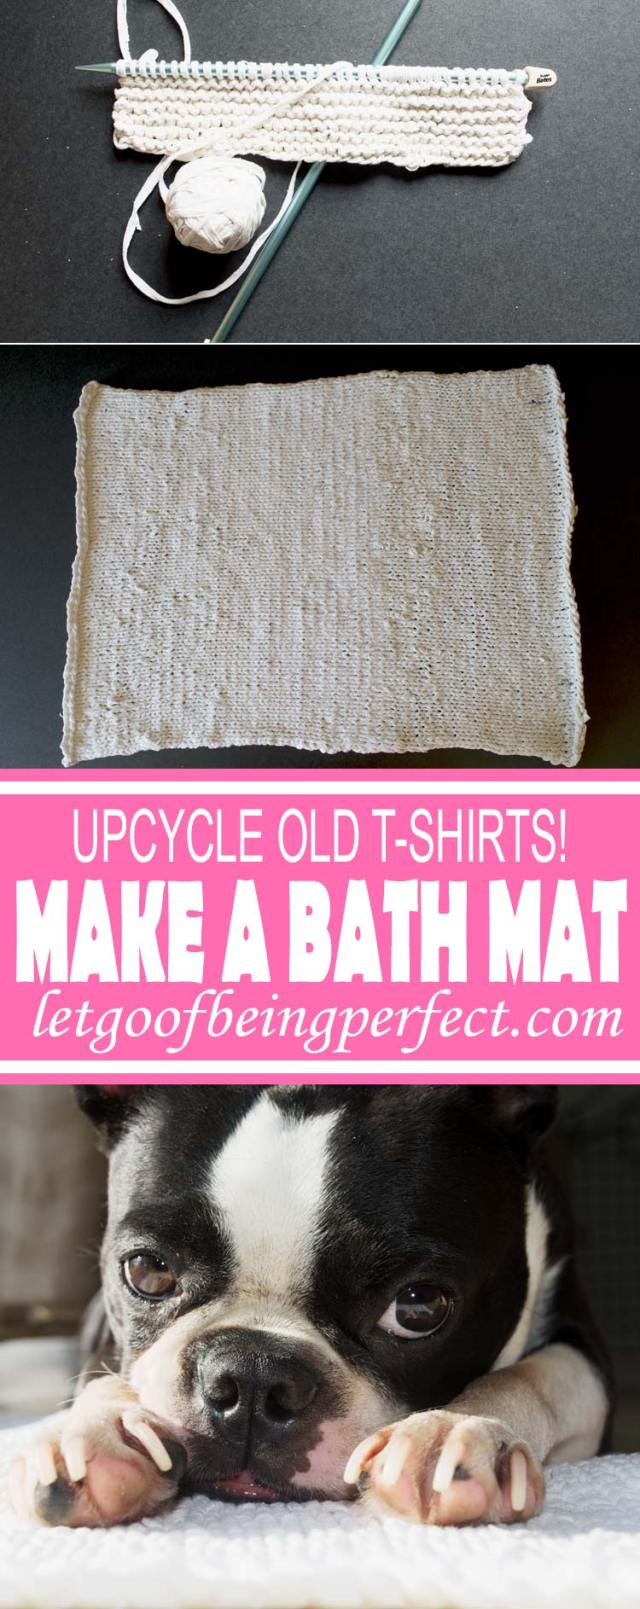 Upcycle a Bath Rug from Old T-Shirts - Repurpose your old t-shirts into a bath mat! Pick up several t-shirts from the Salvation Army or Goodwill for less than 50 cents each, and make up bunchs of these for less than $10. Make different bathroom rugs by dyeing them different colors. A great, low-cost way to change up the bathroom accessories. Remake, redo, reuse, and recycle to help save money and save the planet. Explore the web site for more refashioning tutorials, dozens of cute refashionista and fashion ideas. http://letgoofbeingperfect.com